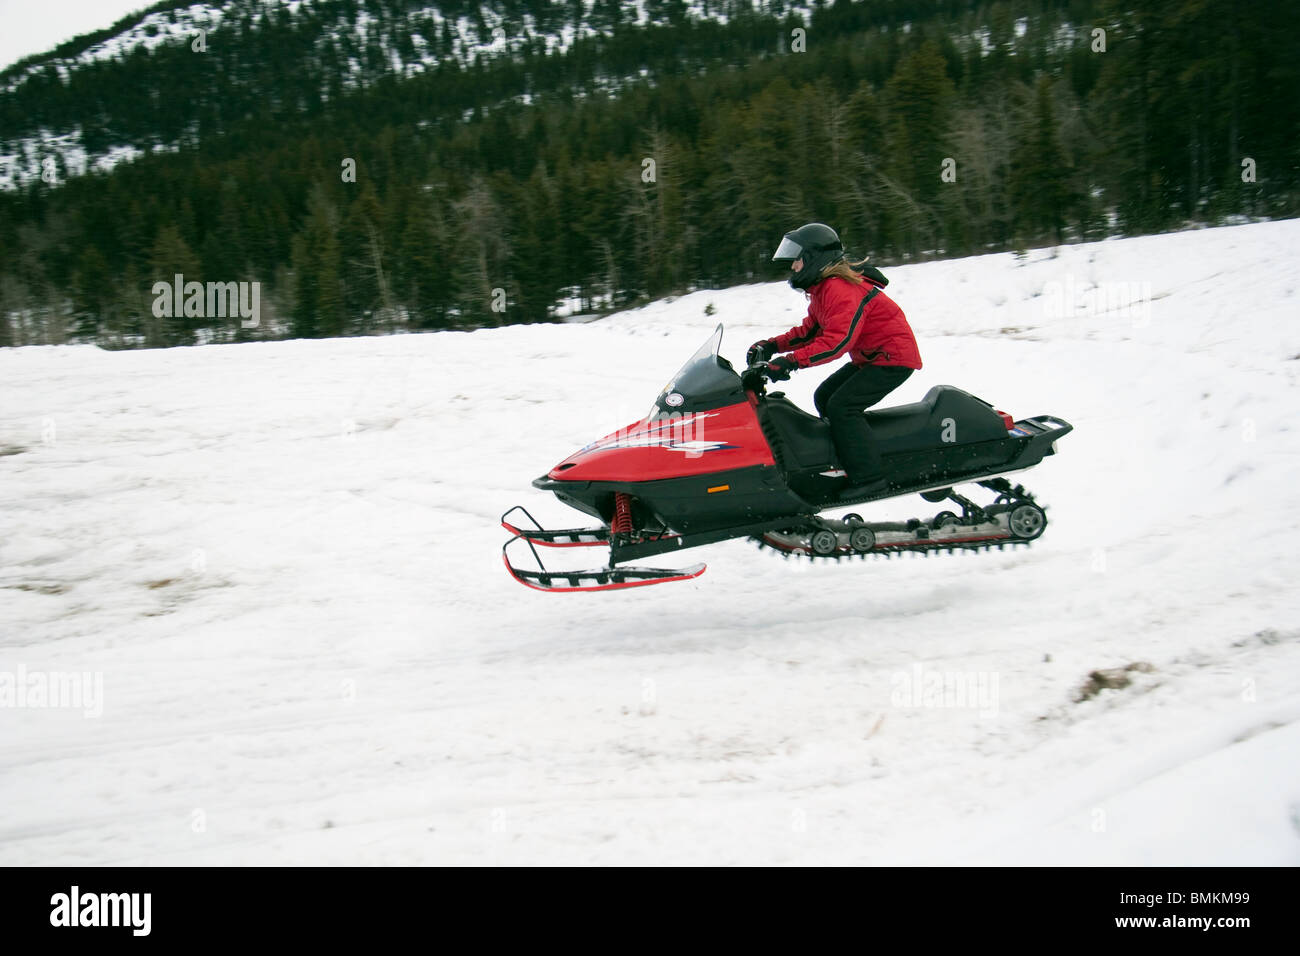 Snowmobile In The Air - Stock Image